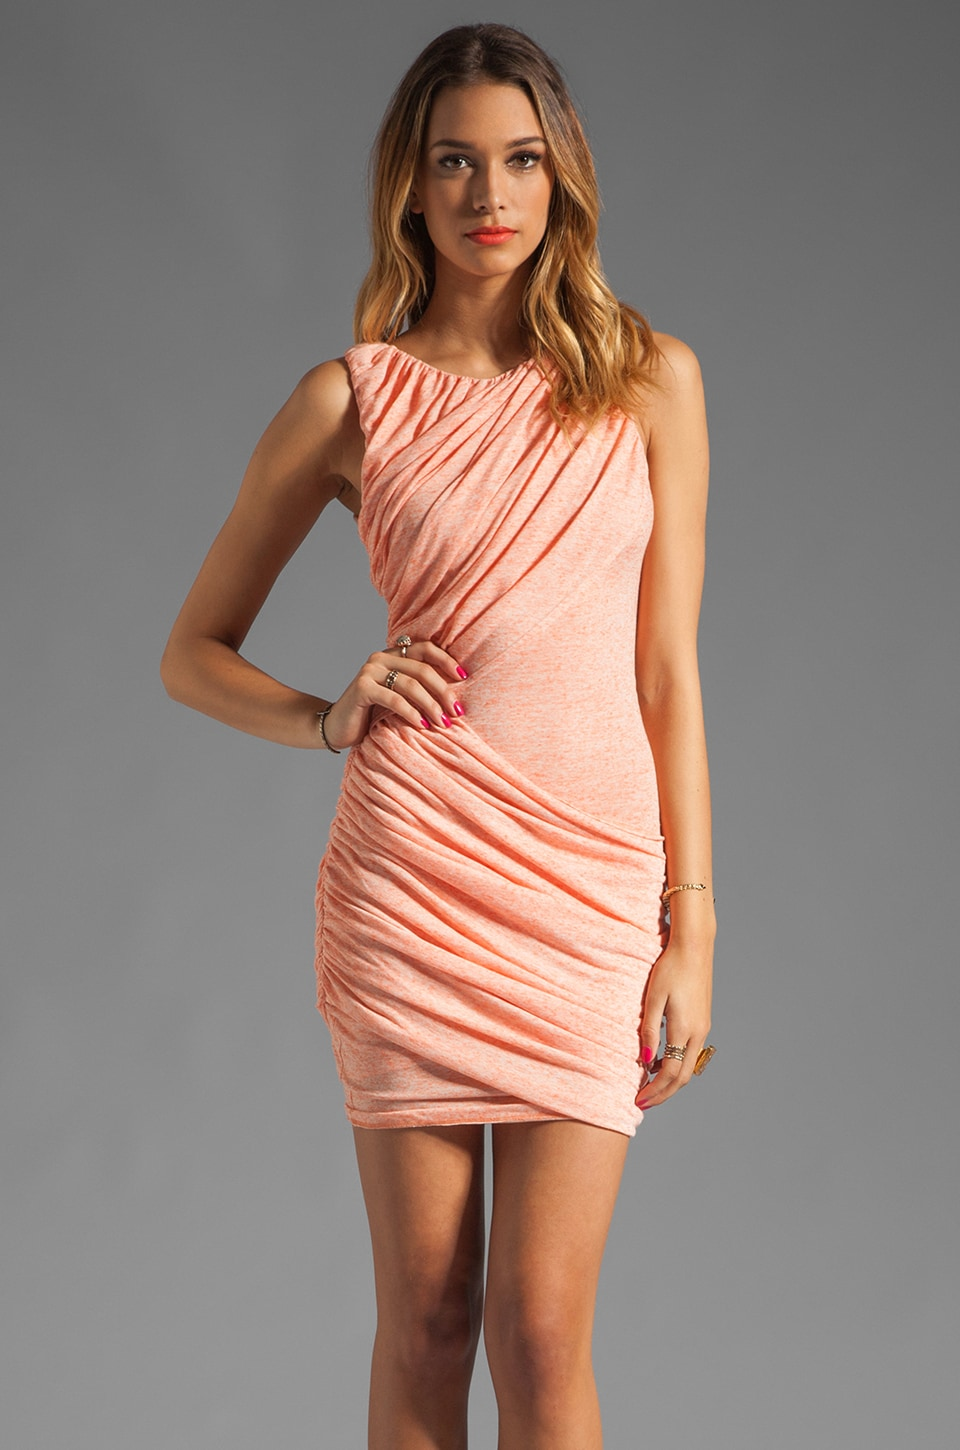 Alice + Olivia Drape Goddess Dress in Orange/White